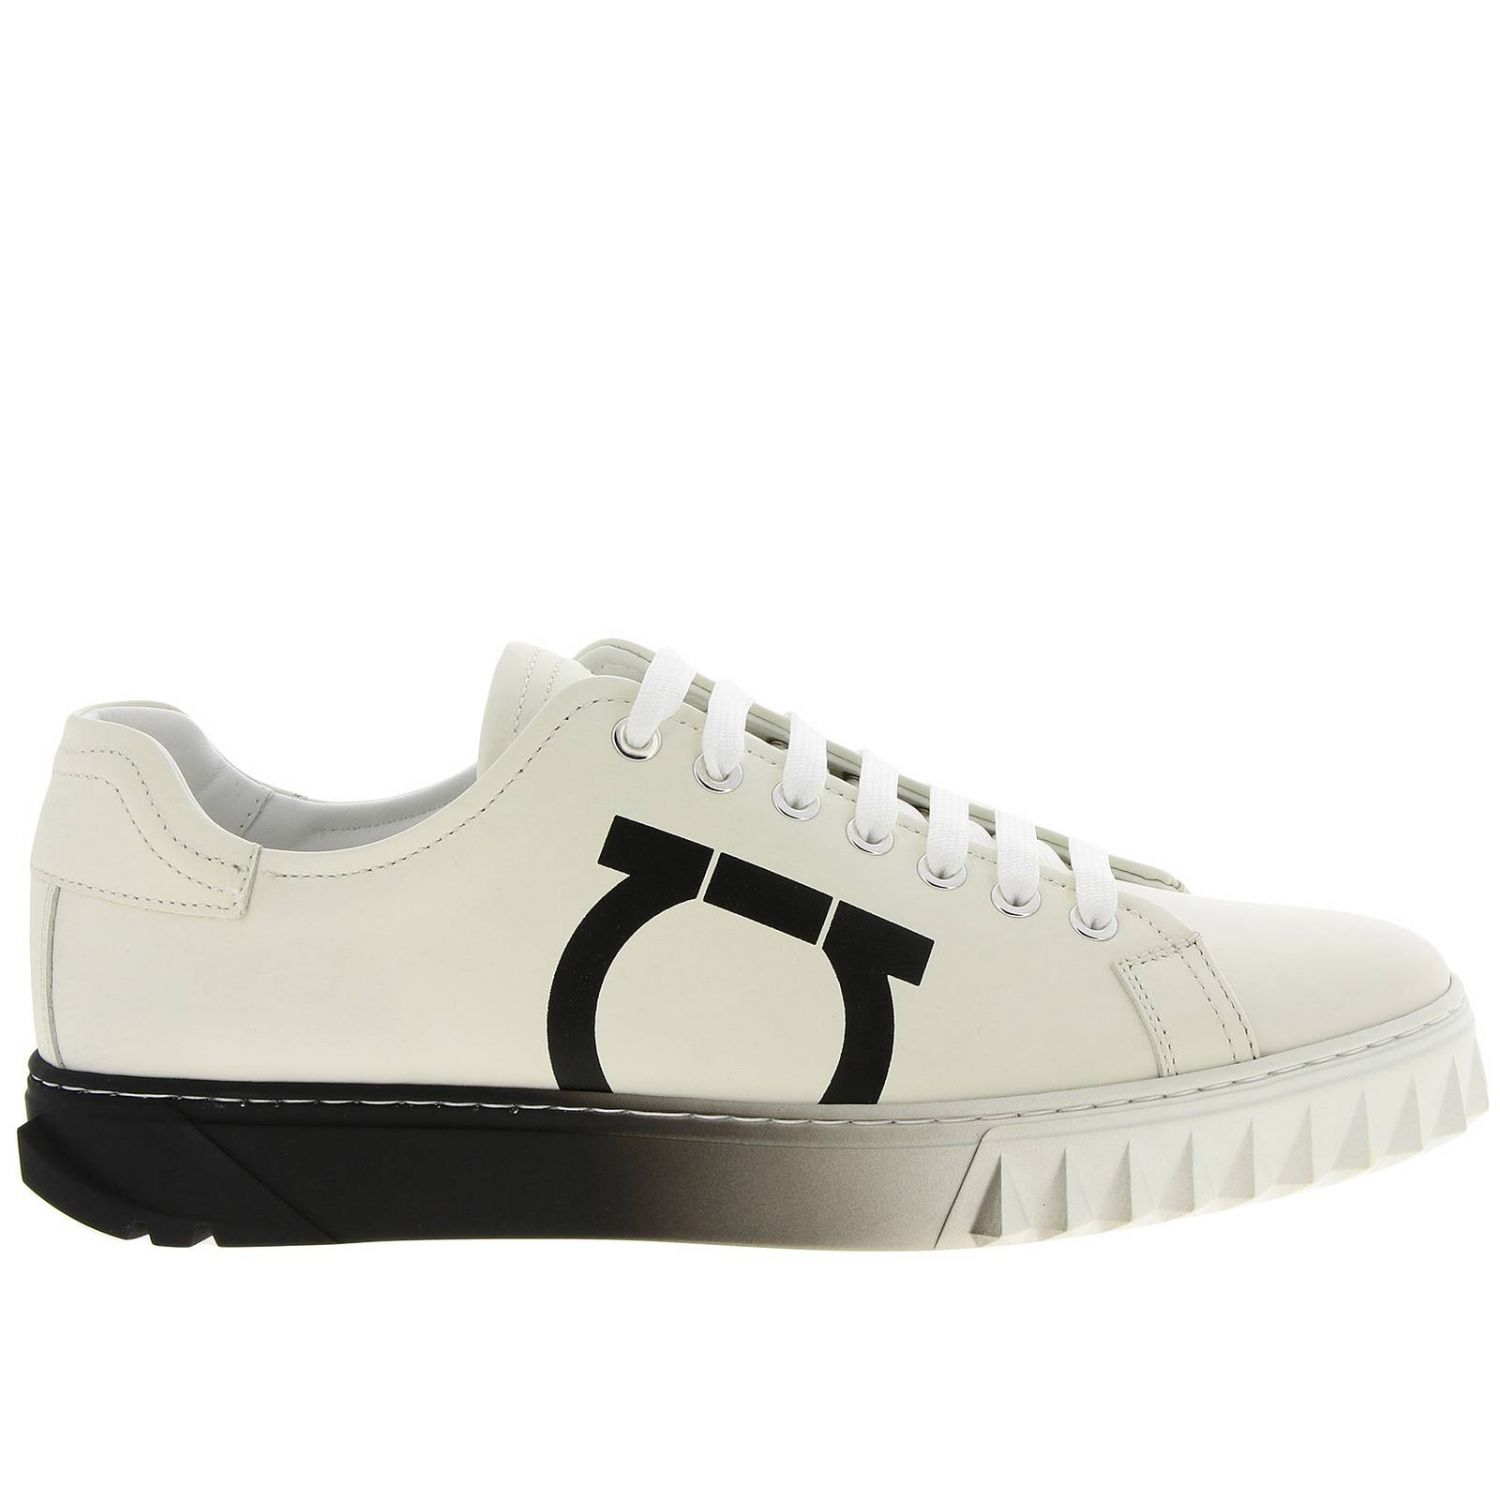 Shoes men Salvatore Ferragamo white 1